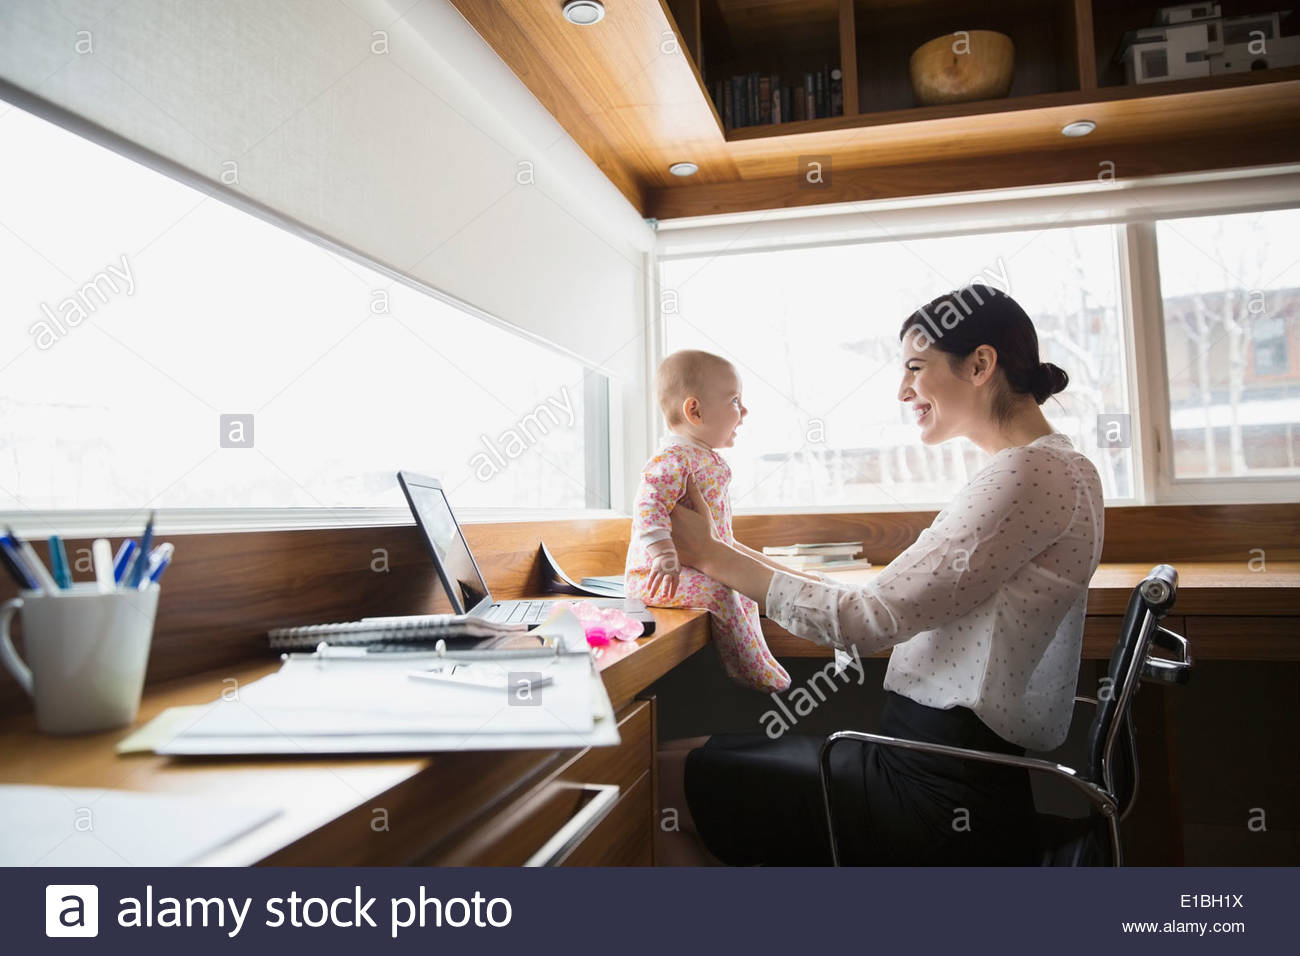 Mother and baby at laptop in home office - Stock Image